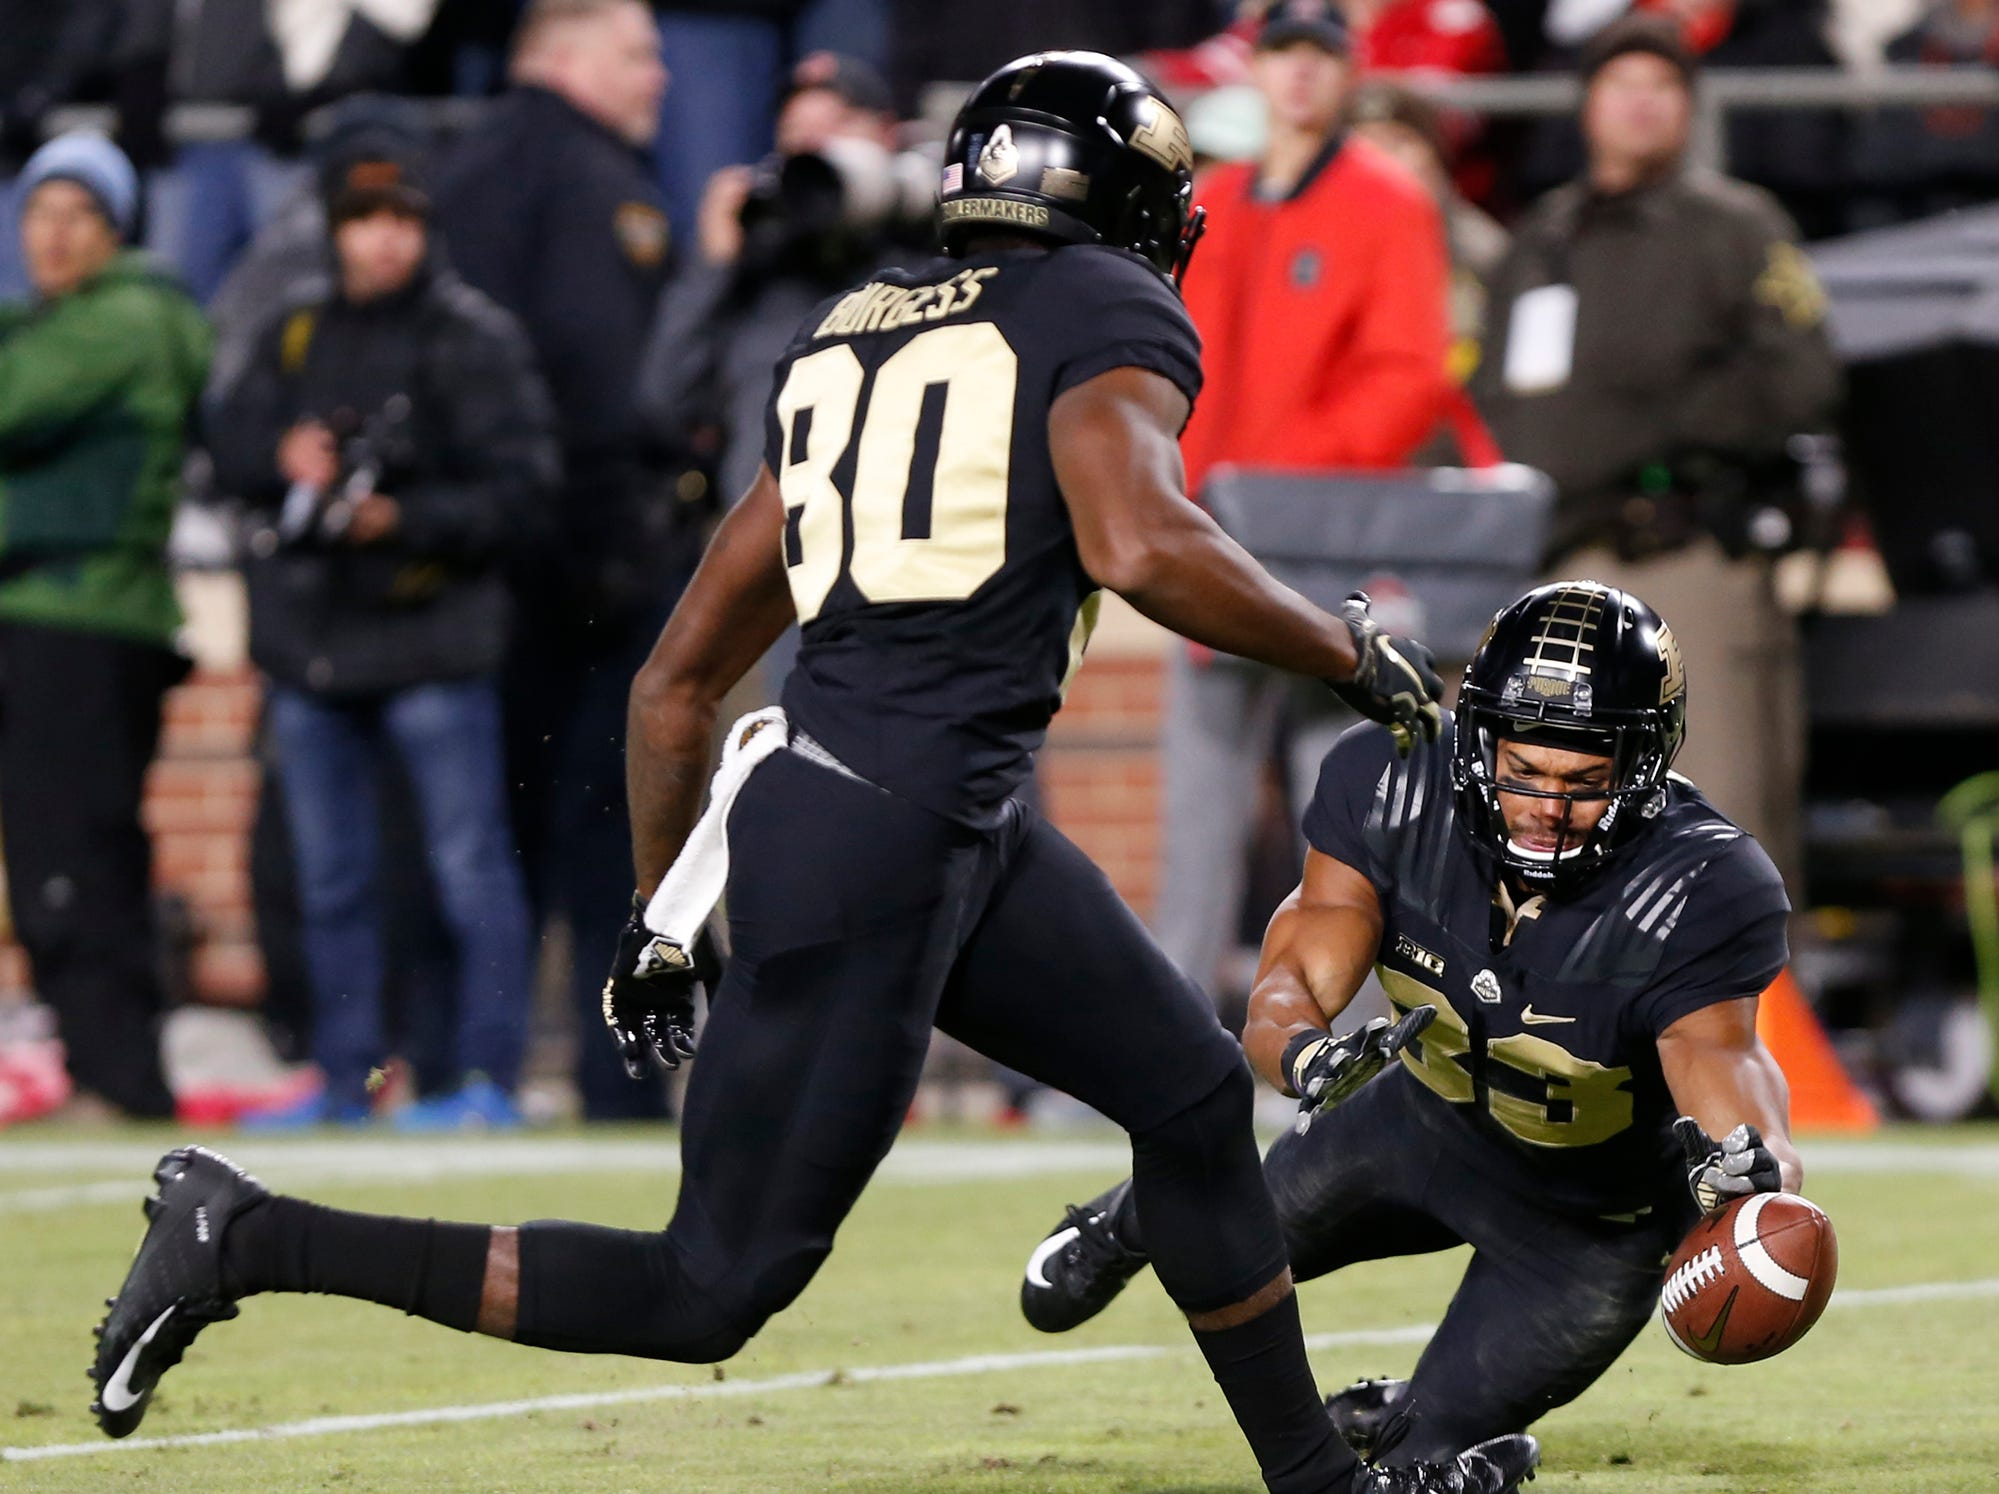 Malcolm Dotson of Purdue dives to keep the ball from crossing the goal line on punt against Ohio State Saturday, October 20, 2018, at Ross-Ade Stadium.